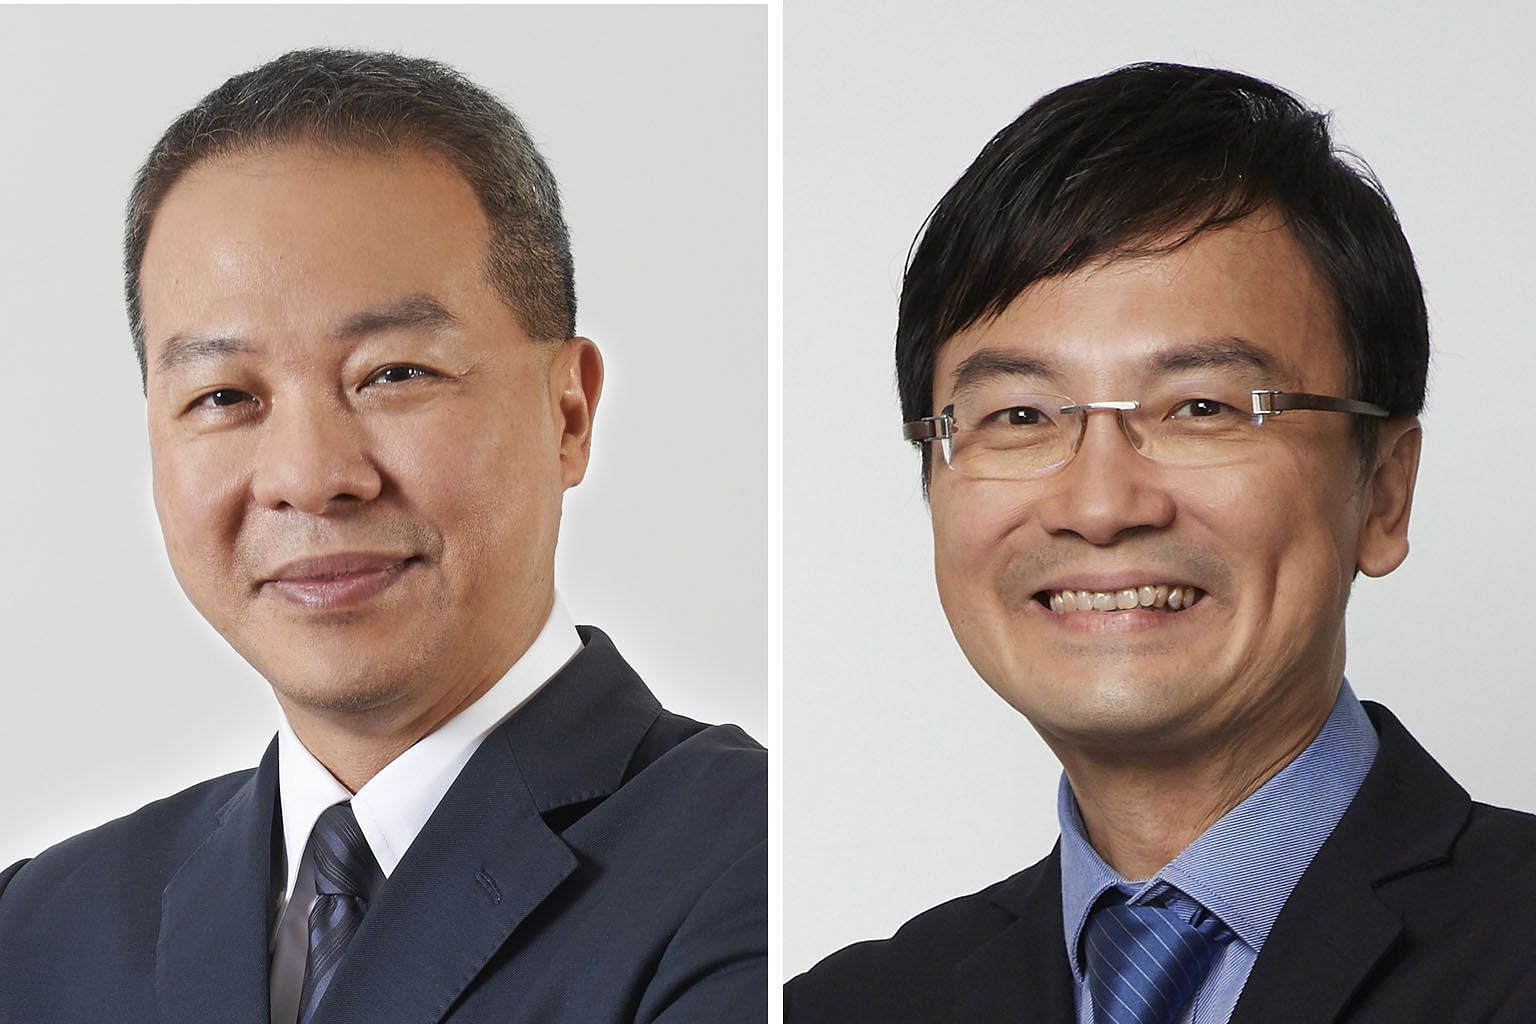 Current JTC chief Ng Lang (left) will replace Mr Ngien Hoon Ping at the Land Transport Authority.